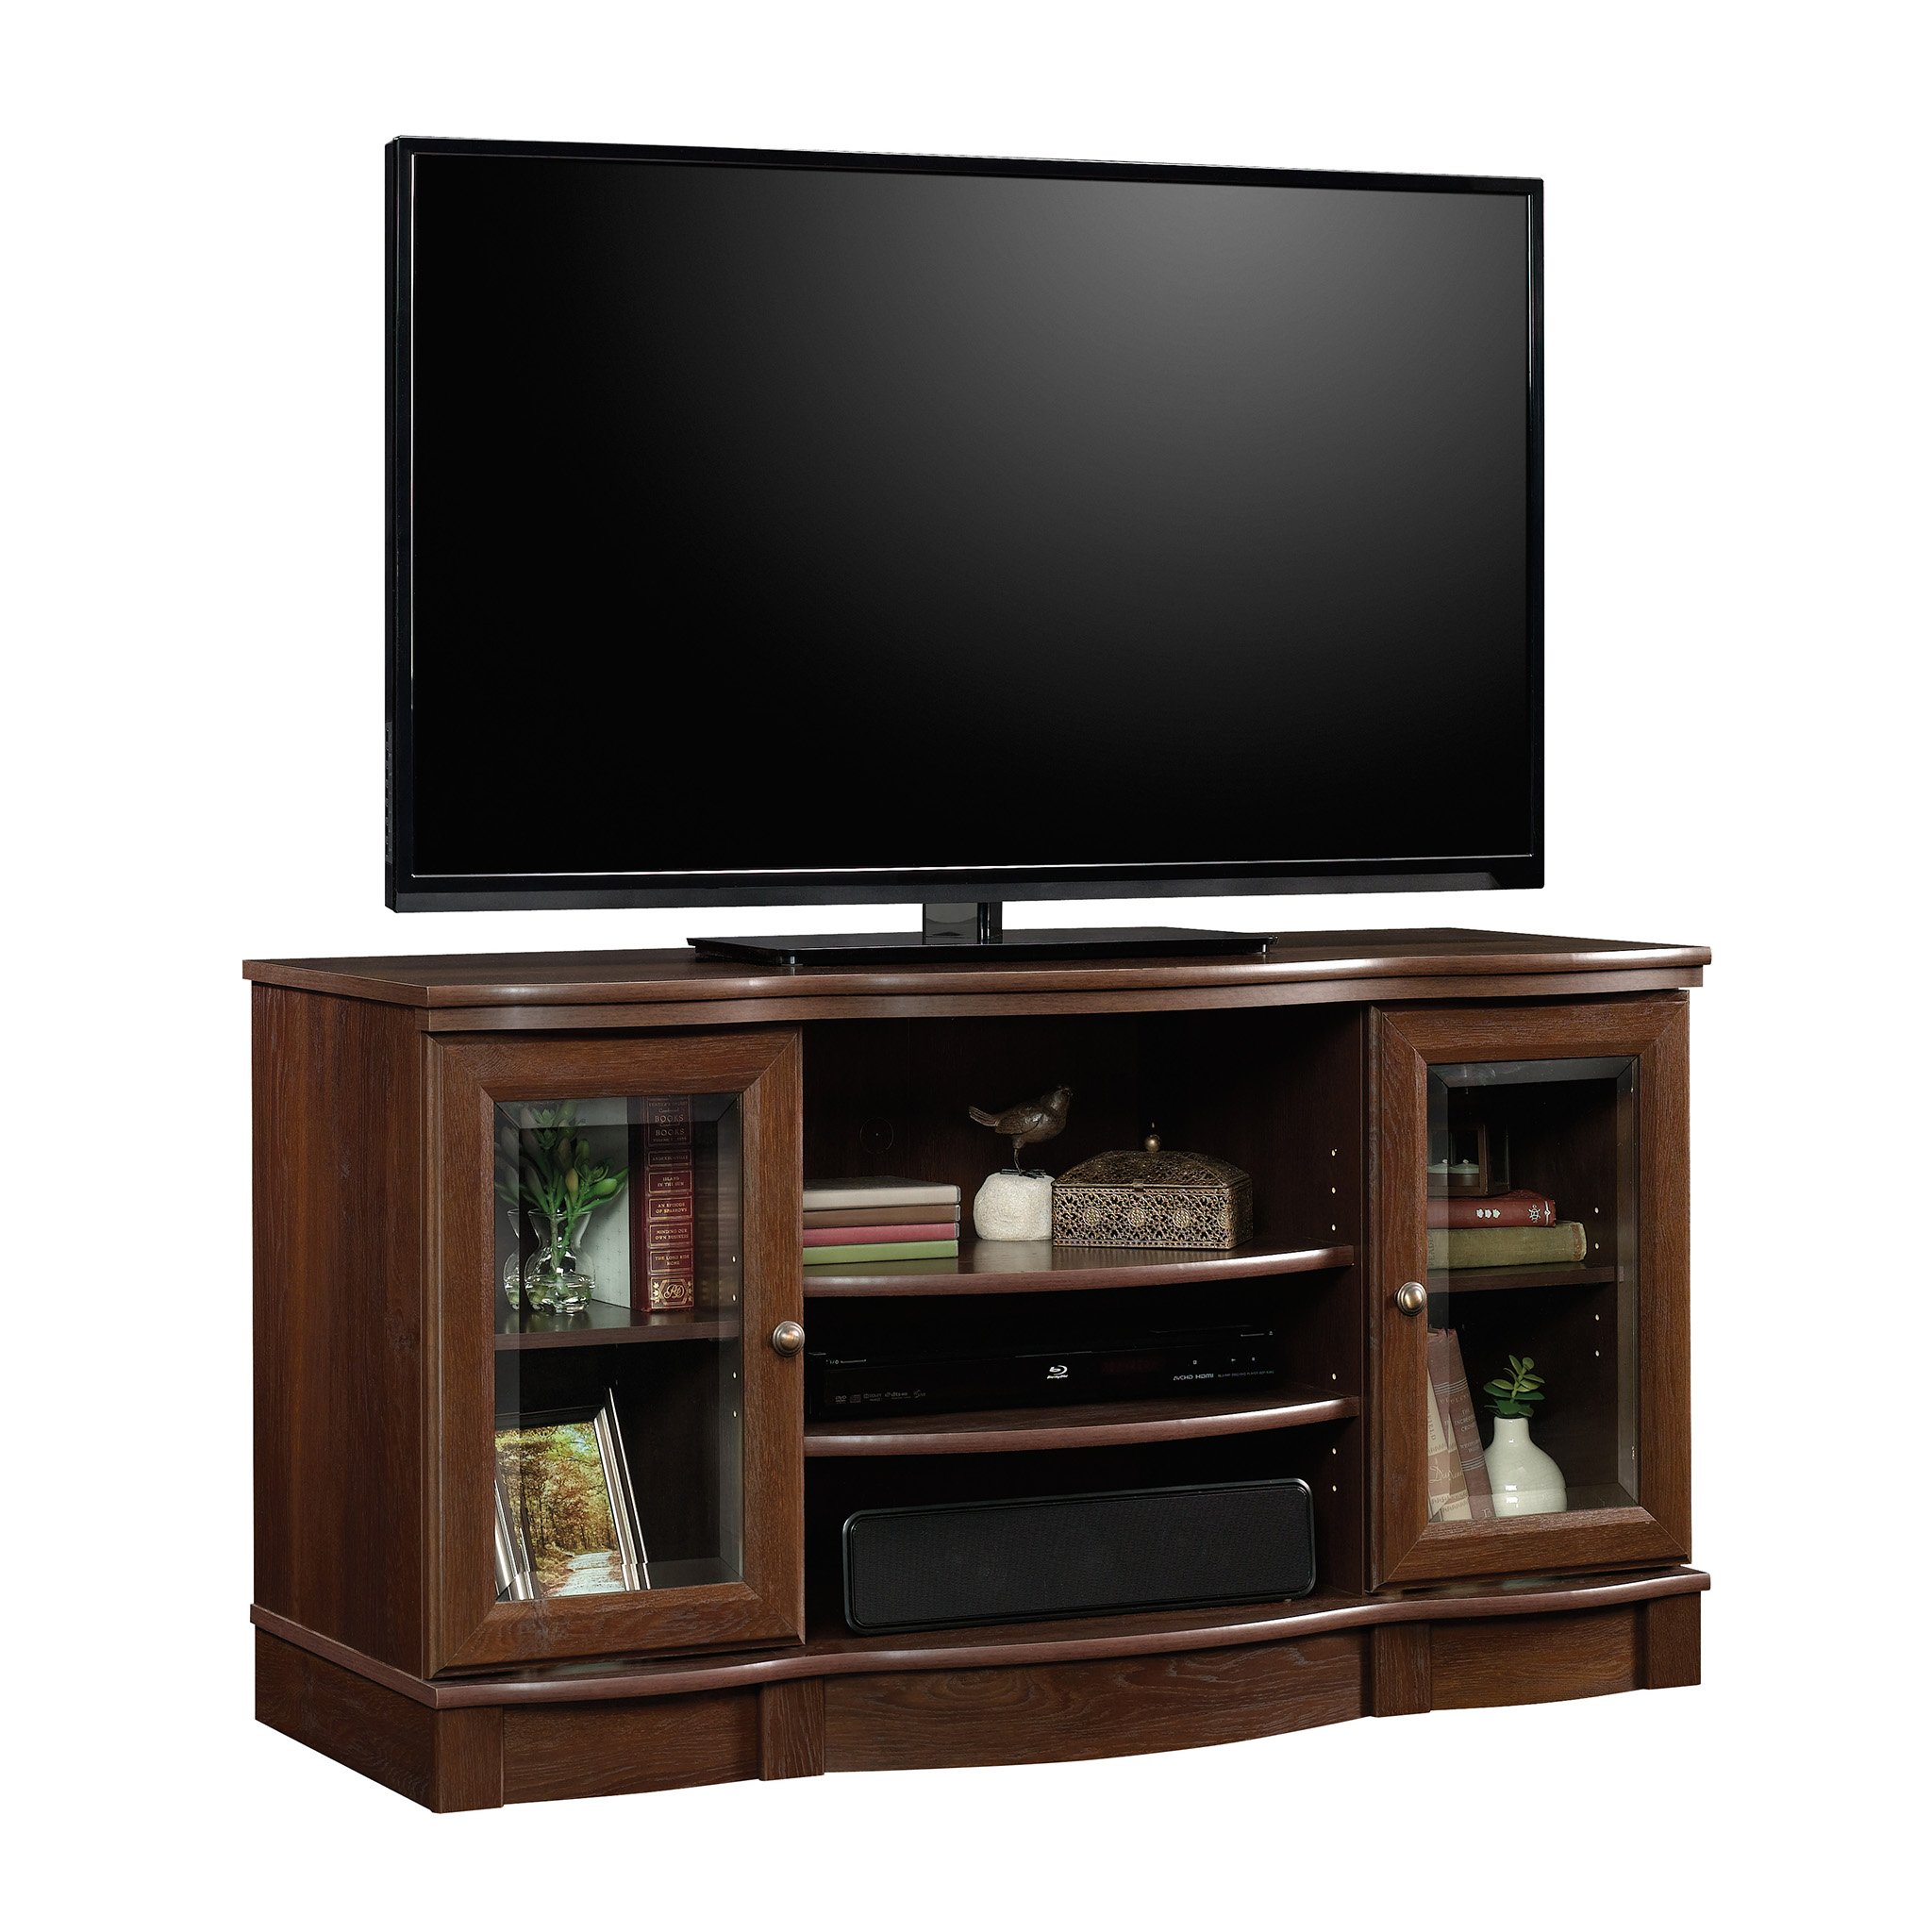 Sauder Regent Place TV Stand, For TV's up to 50'', Euro Oak finish by Sauder